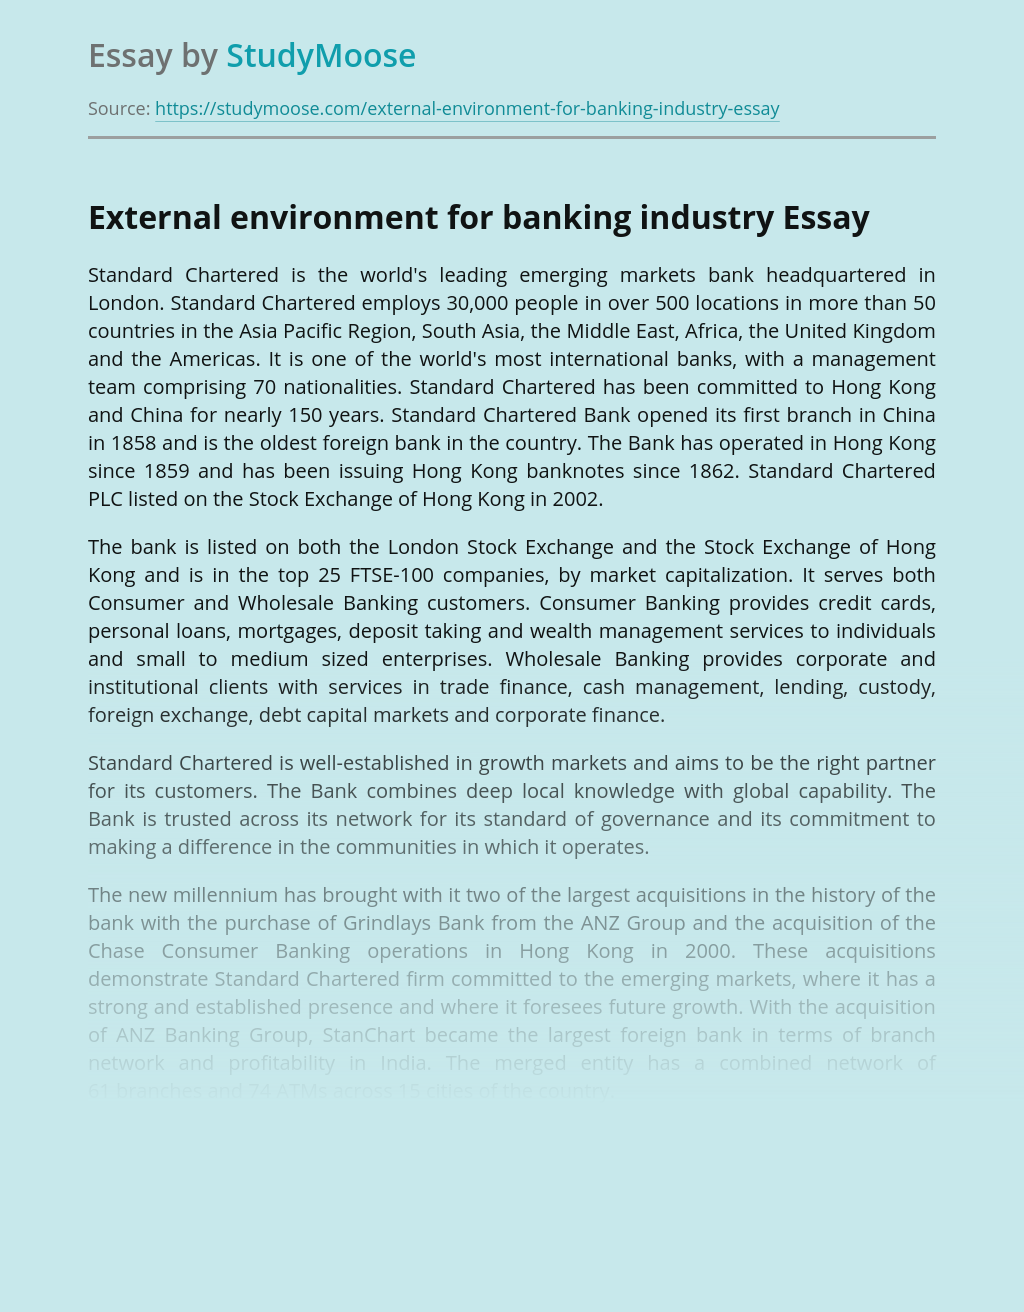 External environment for banking industry